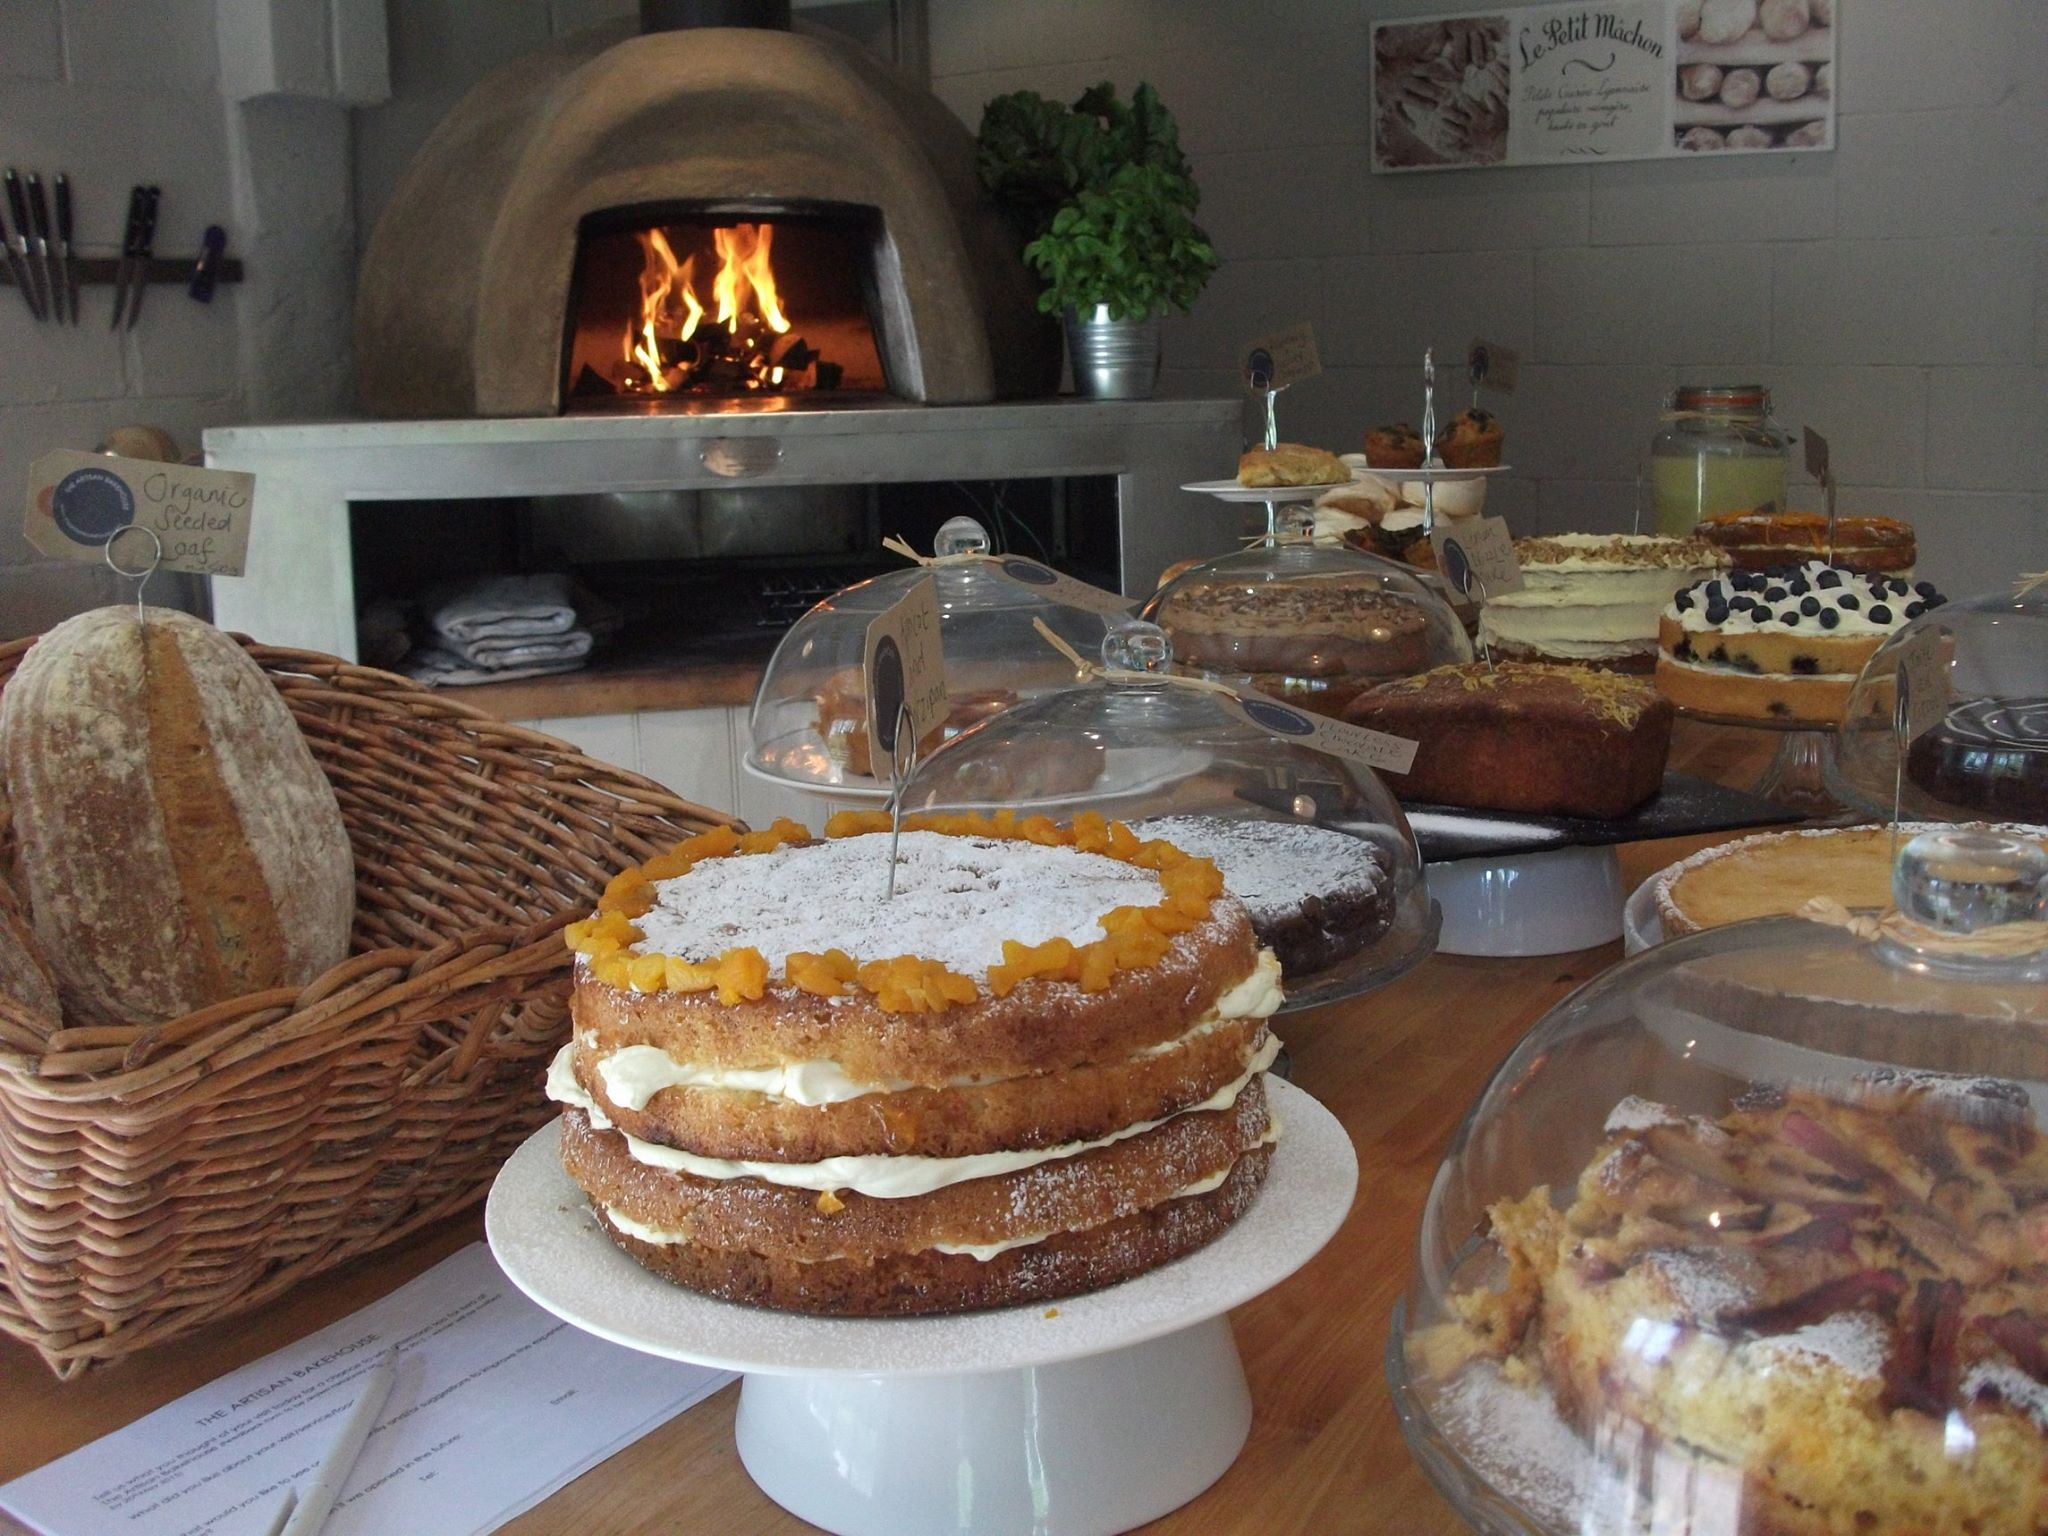 The Artisan Bakehouse